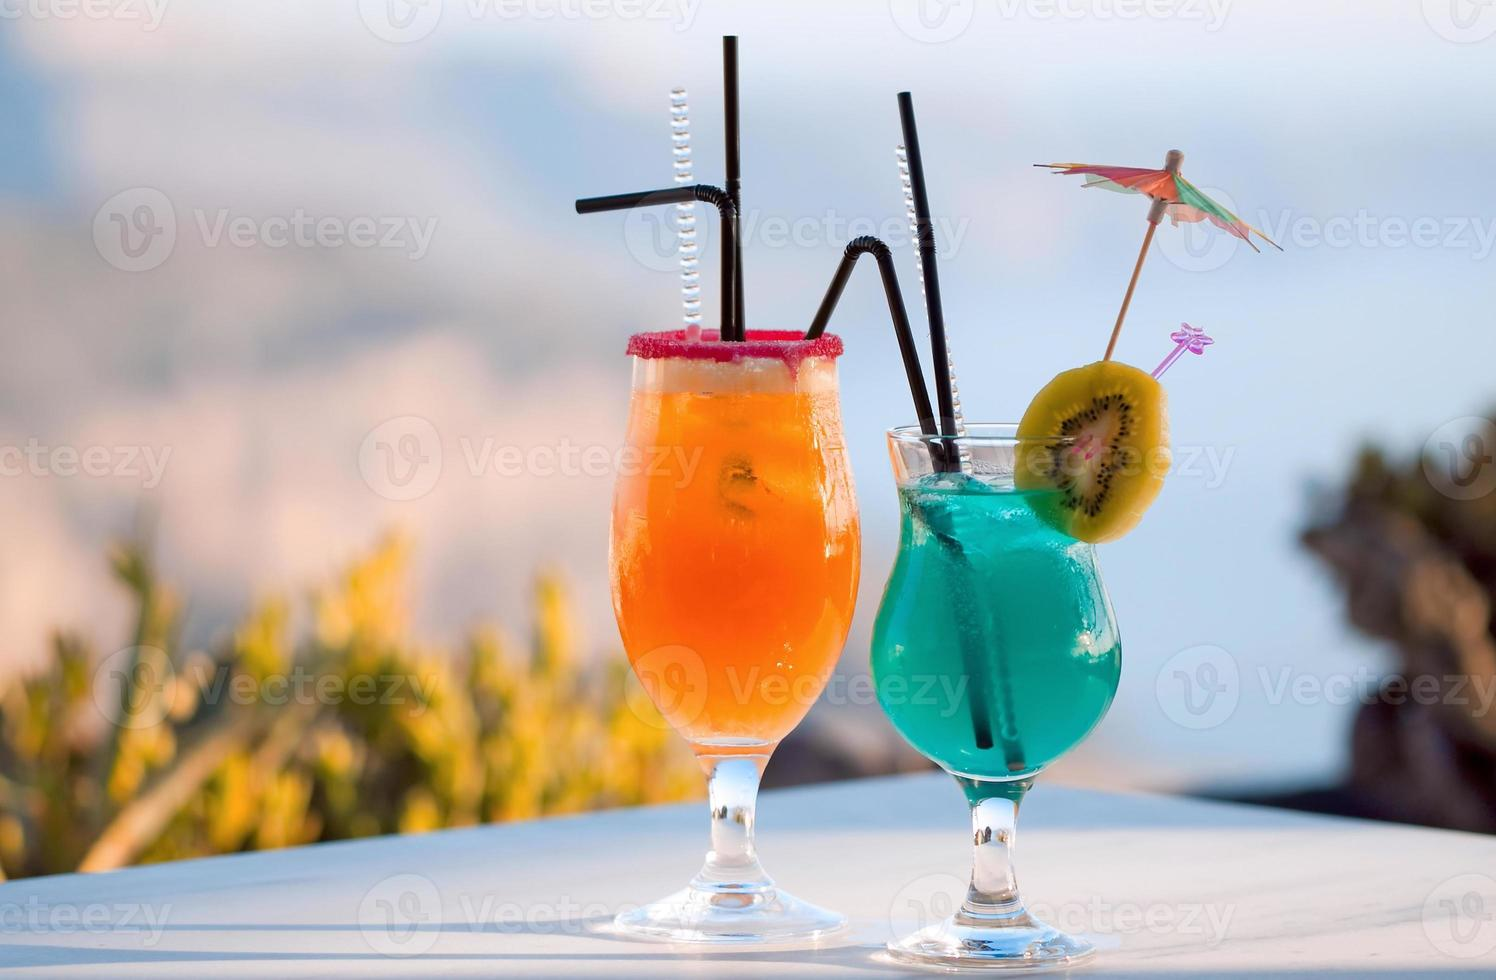 zomerse cocktails foto